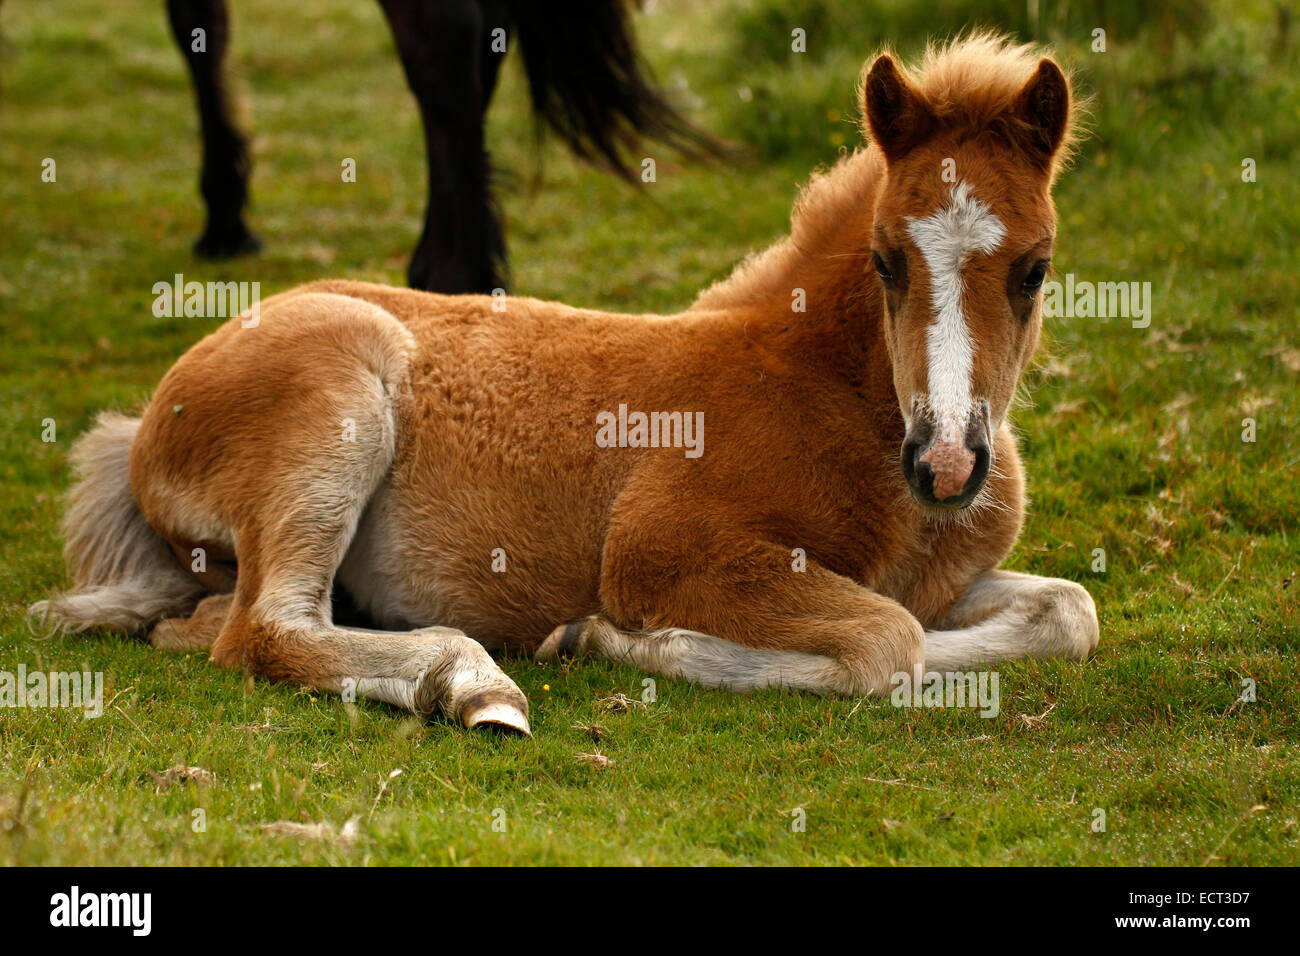 Wild Or Semi Feral Pony Foal On Dartmoor This Cute Little Baby Stock Photo Alamy